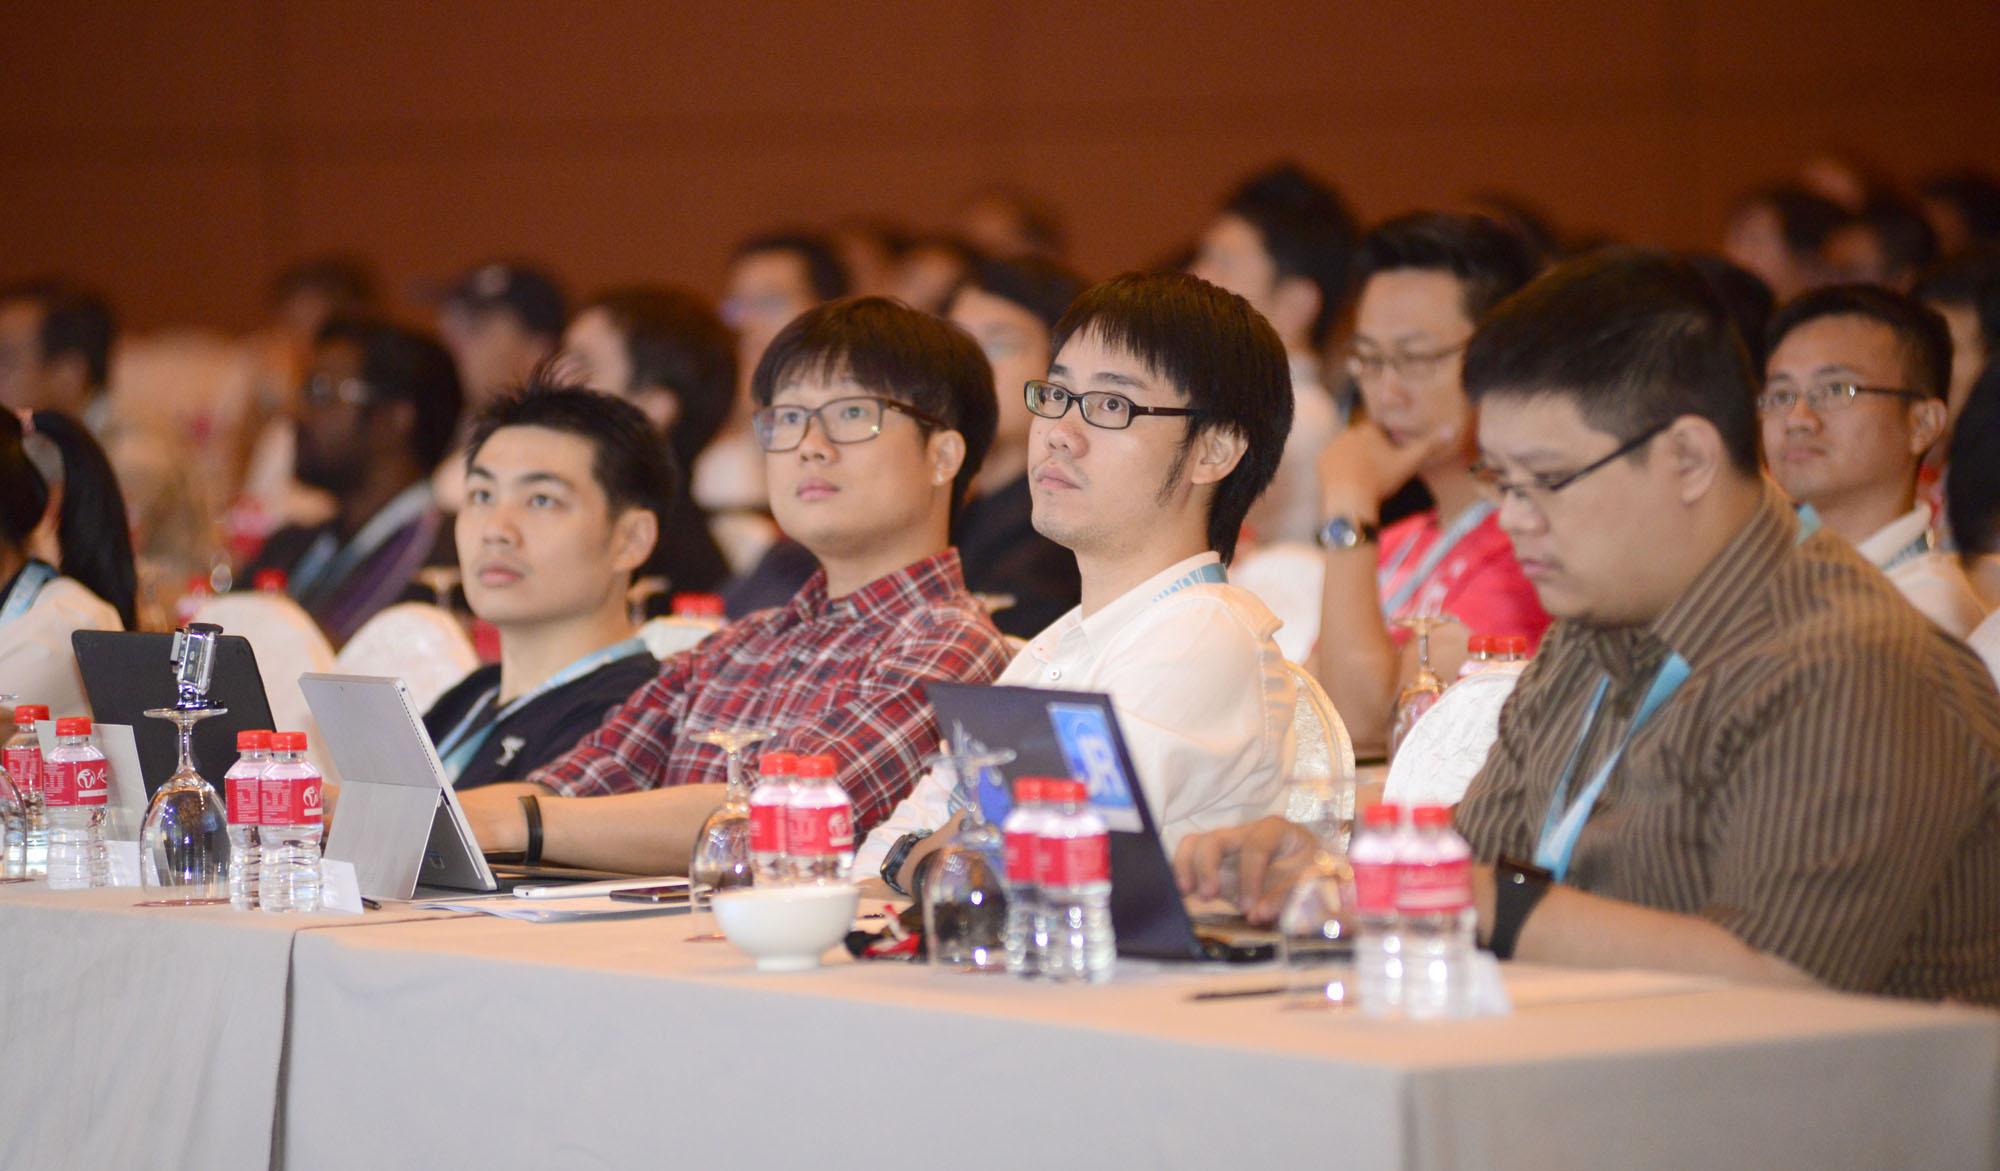 More than 400 developers took part in the Build Singapore conference. Members of the media were also invited to attend the event.